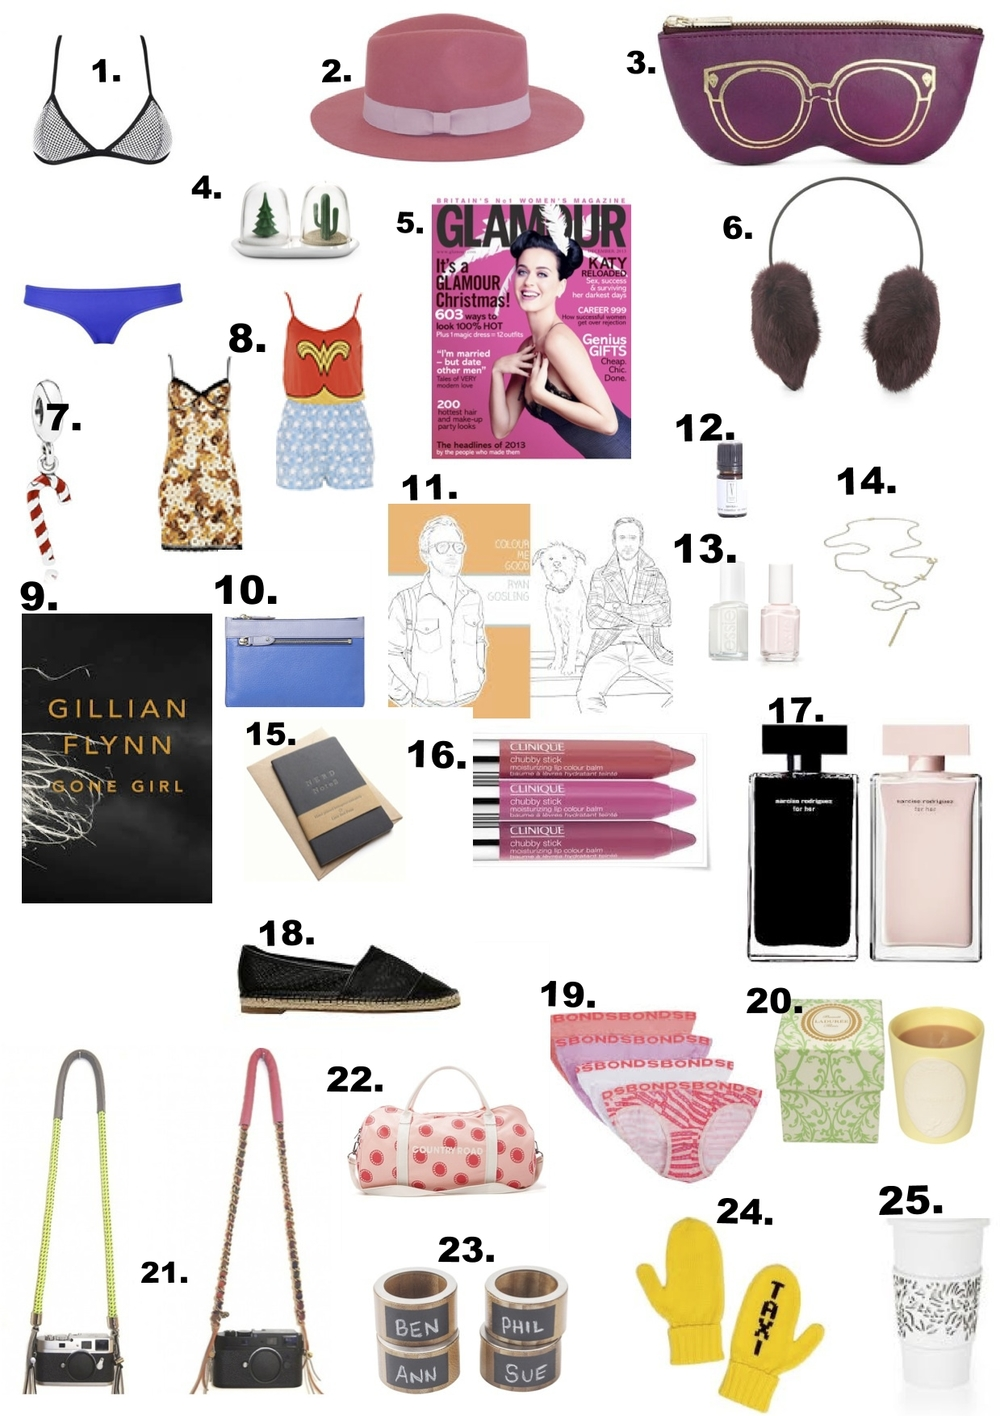 ladies gift guide copy 2.jpg